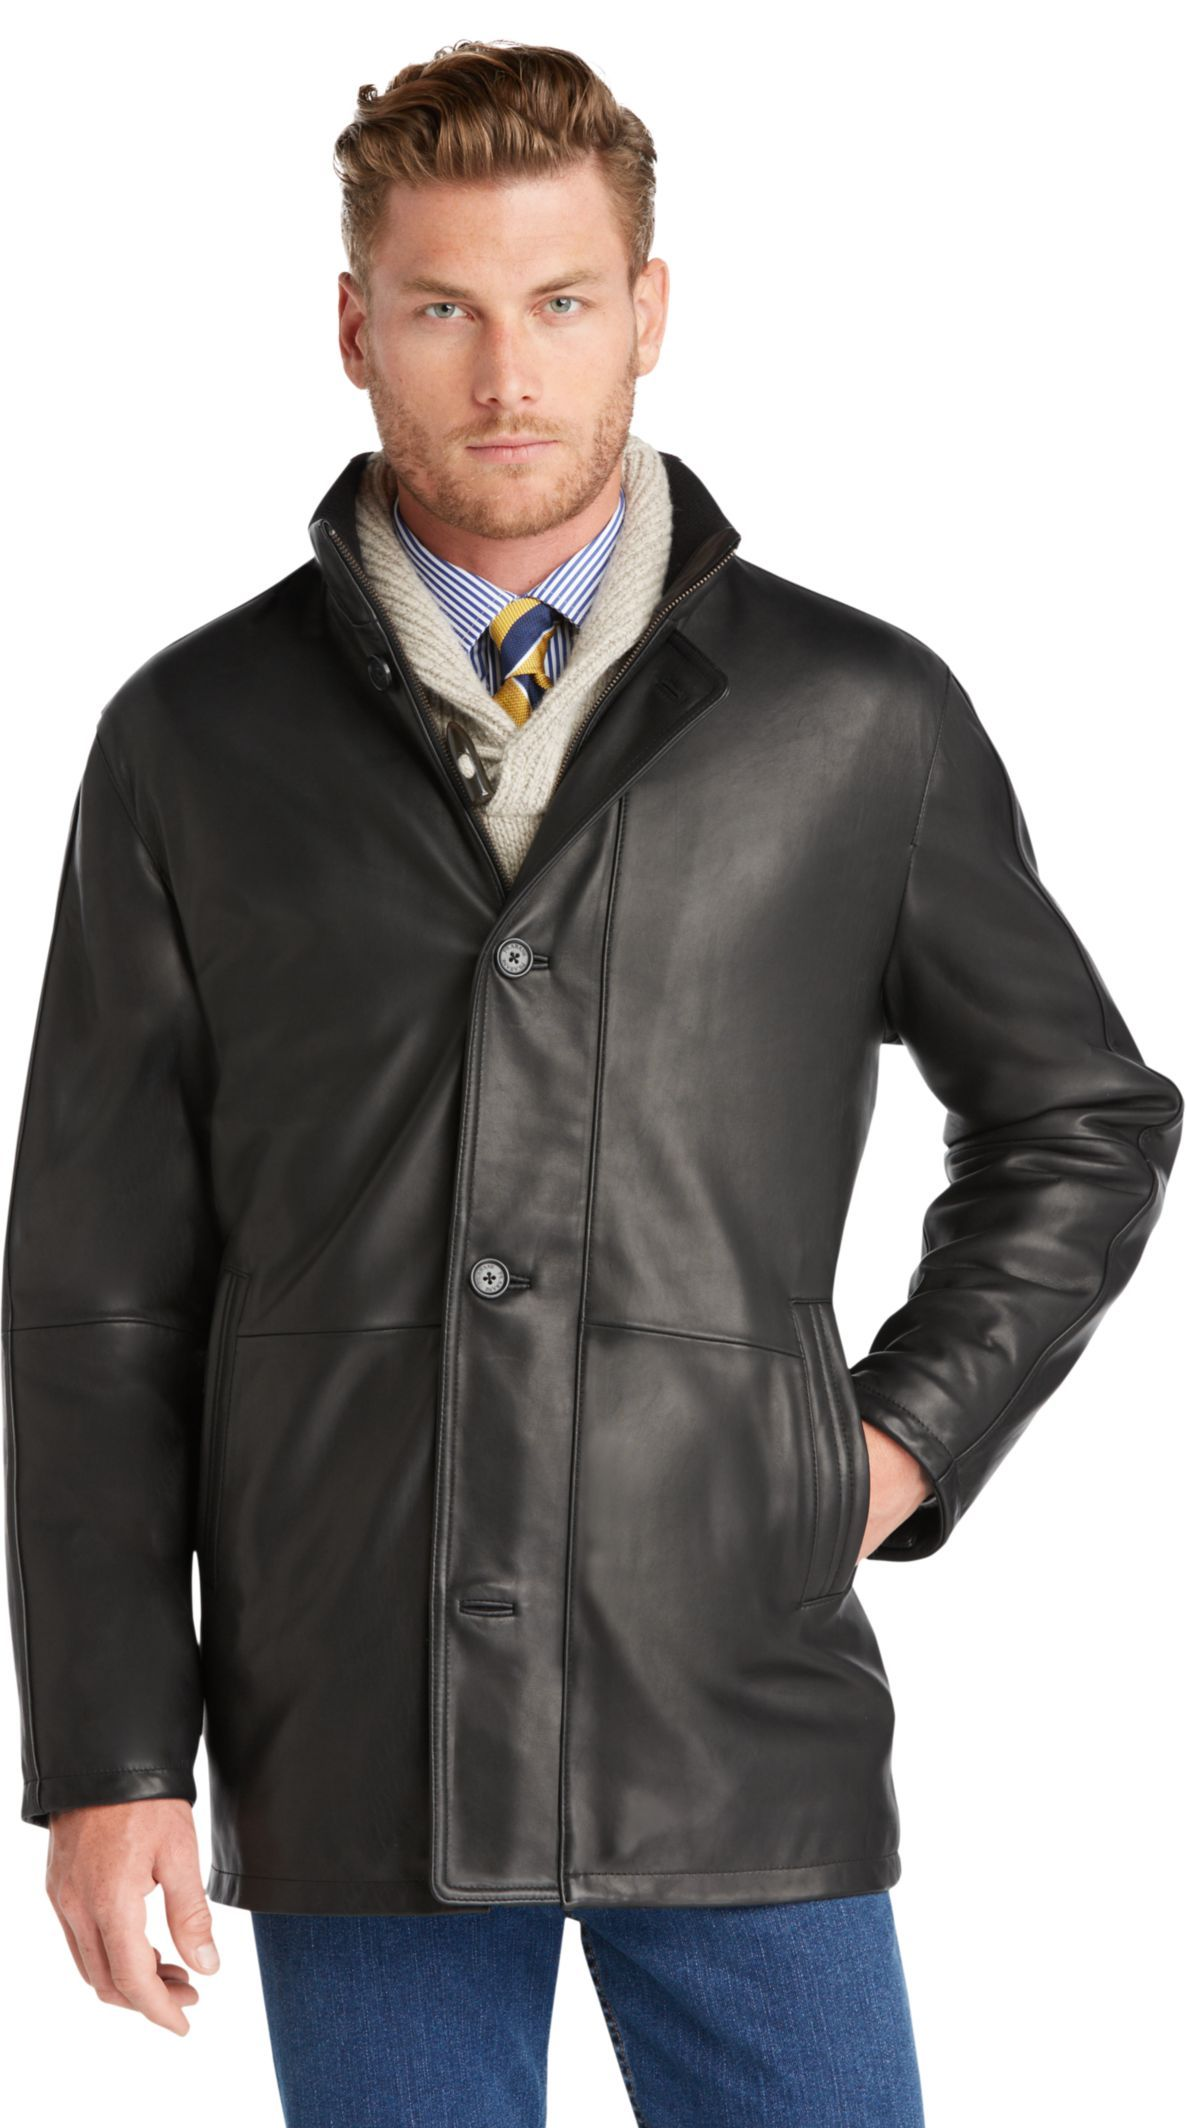 Signature 3/4 Length Leather Car Coat | Jerry leather | Pinterest ...